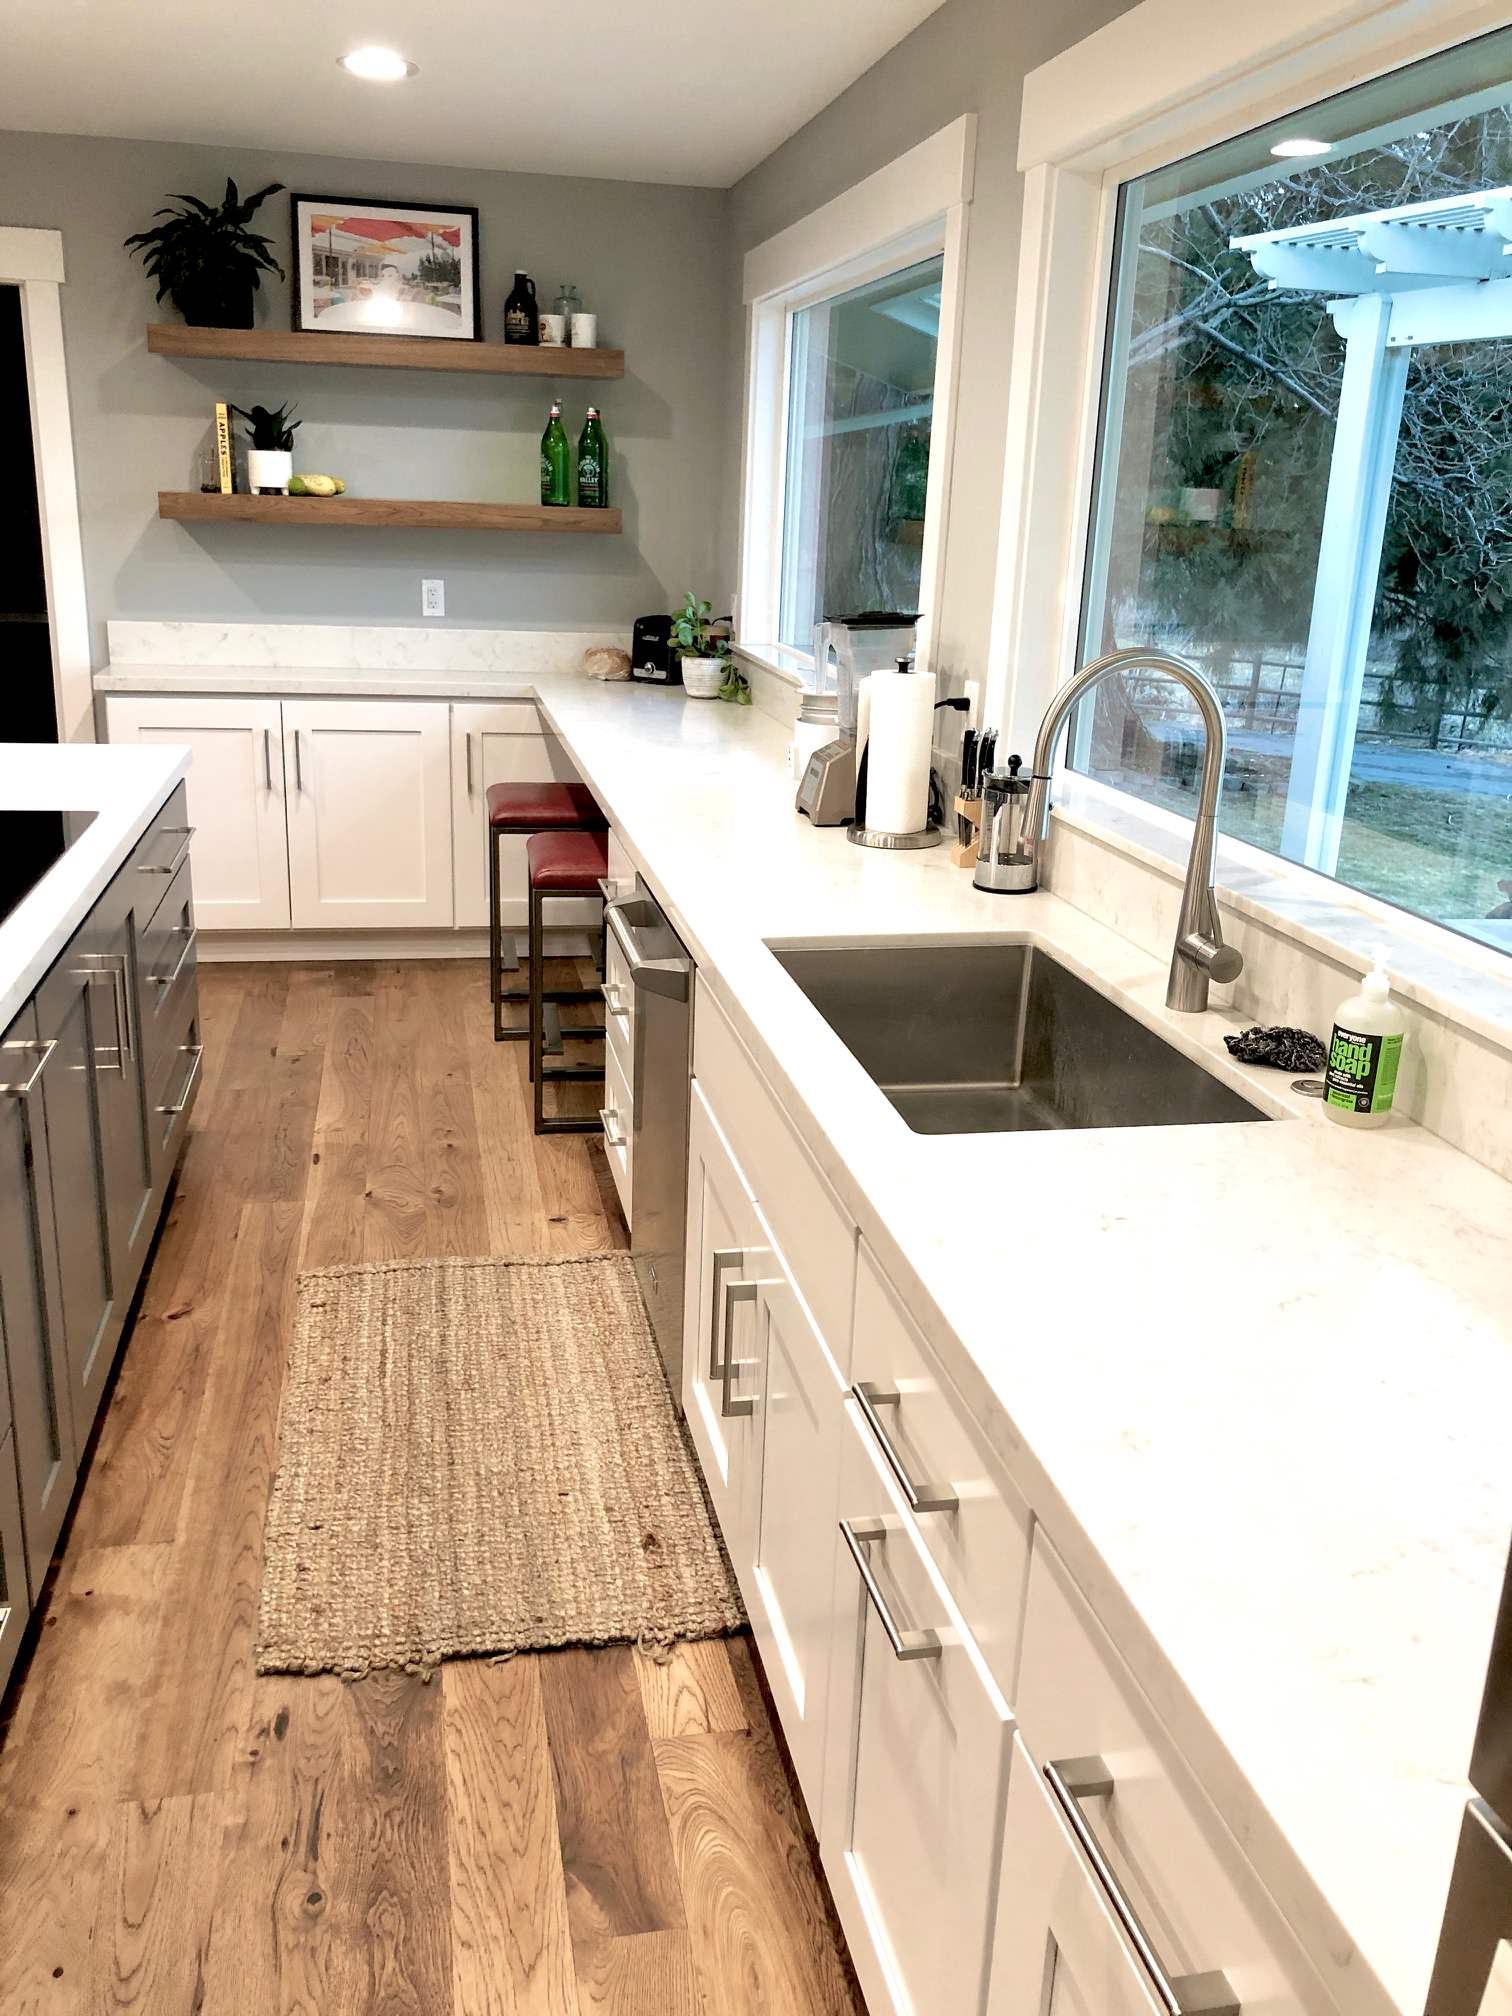 Transitional with a Hint of Rustic